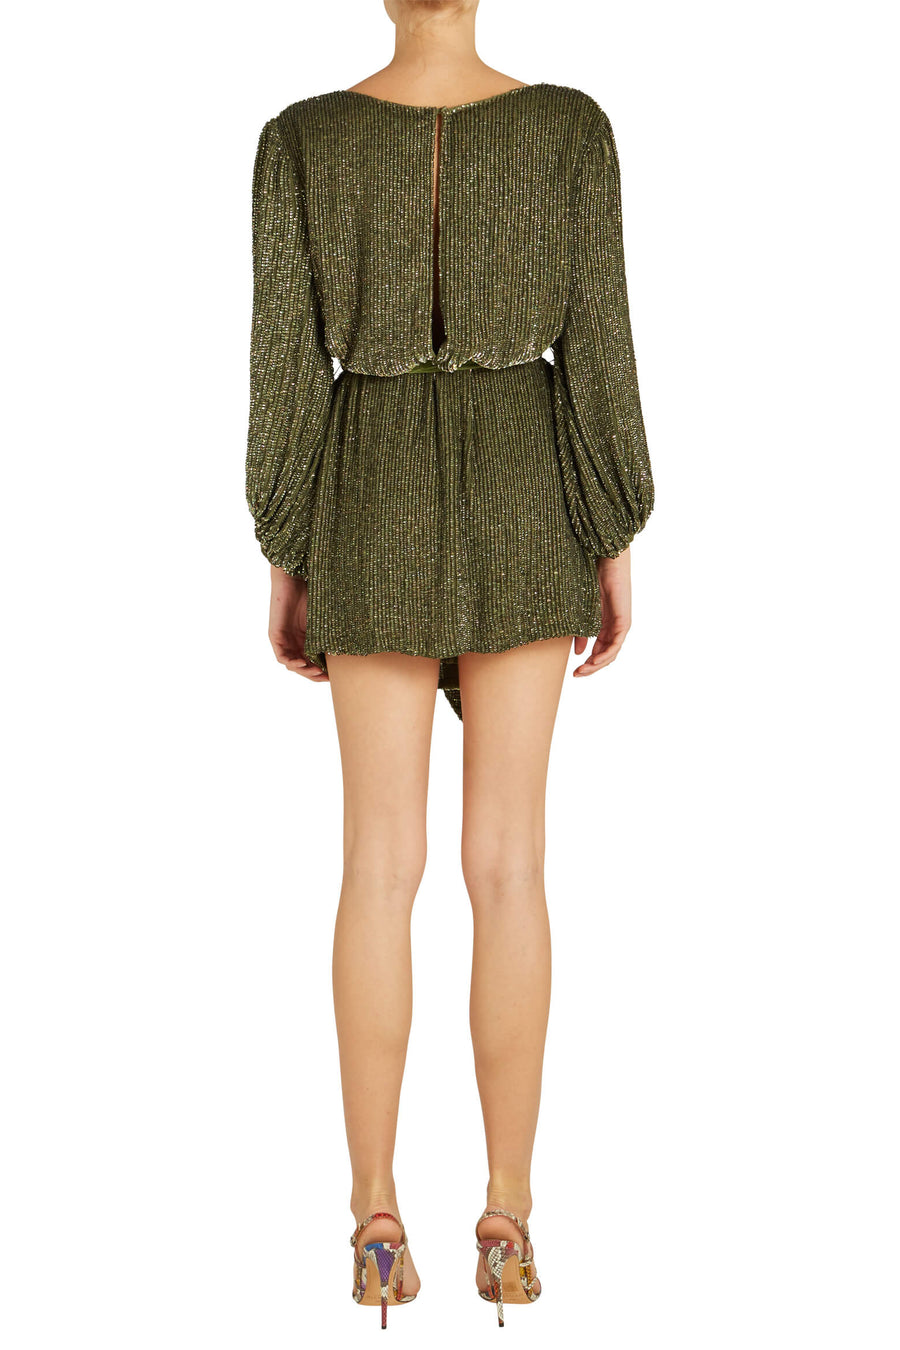 Retrofete Denisa Dress in Army from The New Trend